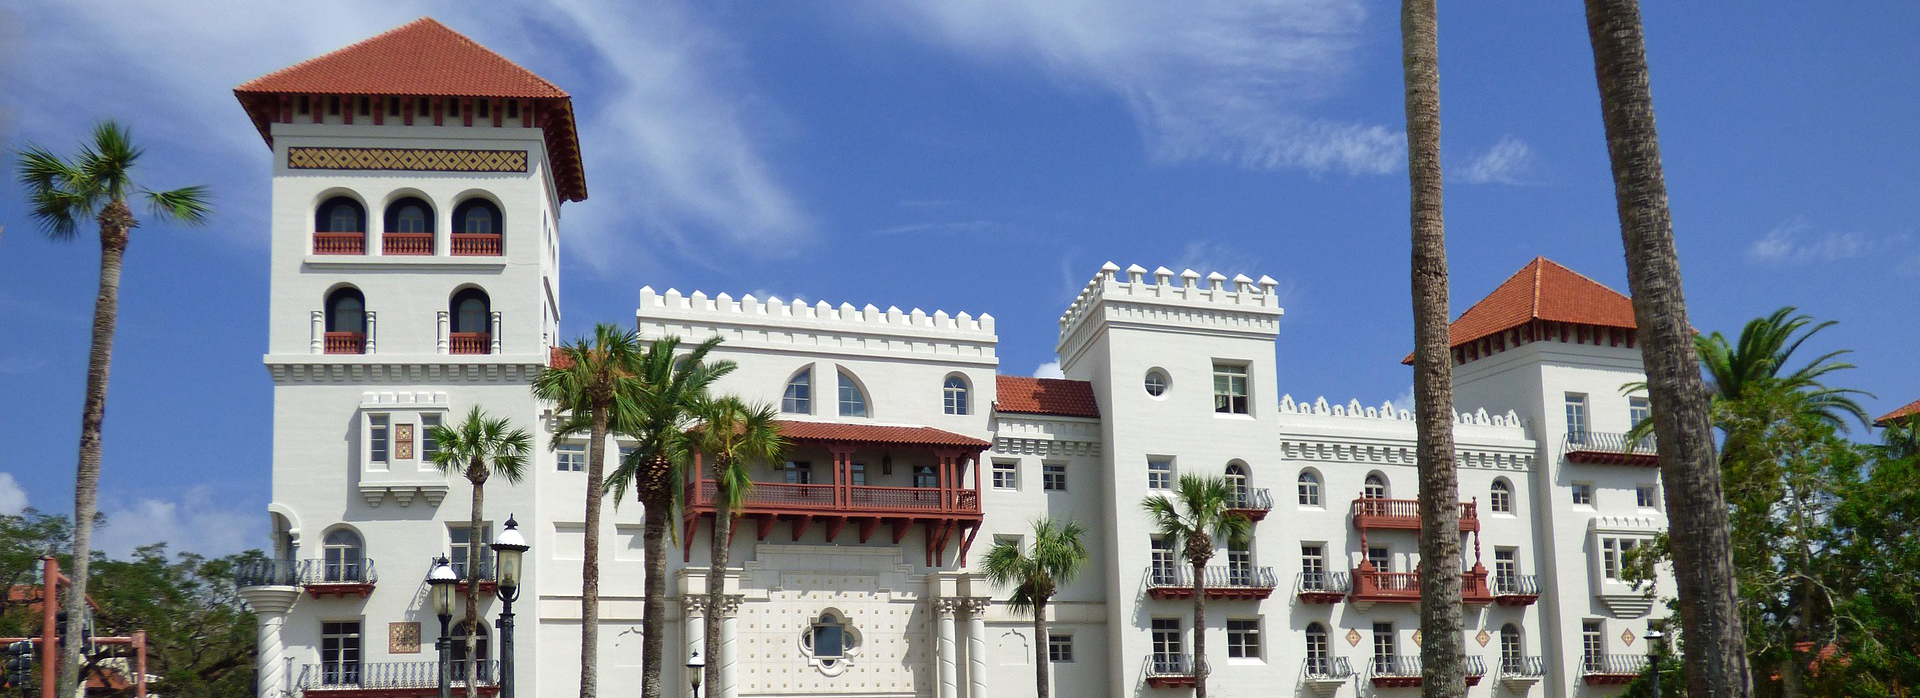 Historic Architecture in St. Augustine Florida | Breast Cancer Car Donation